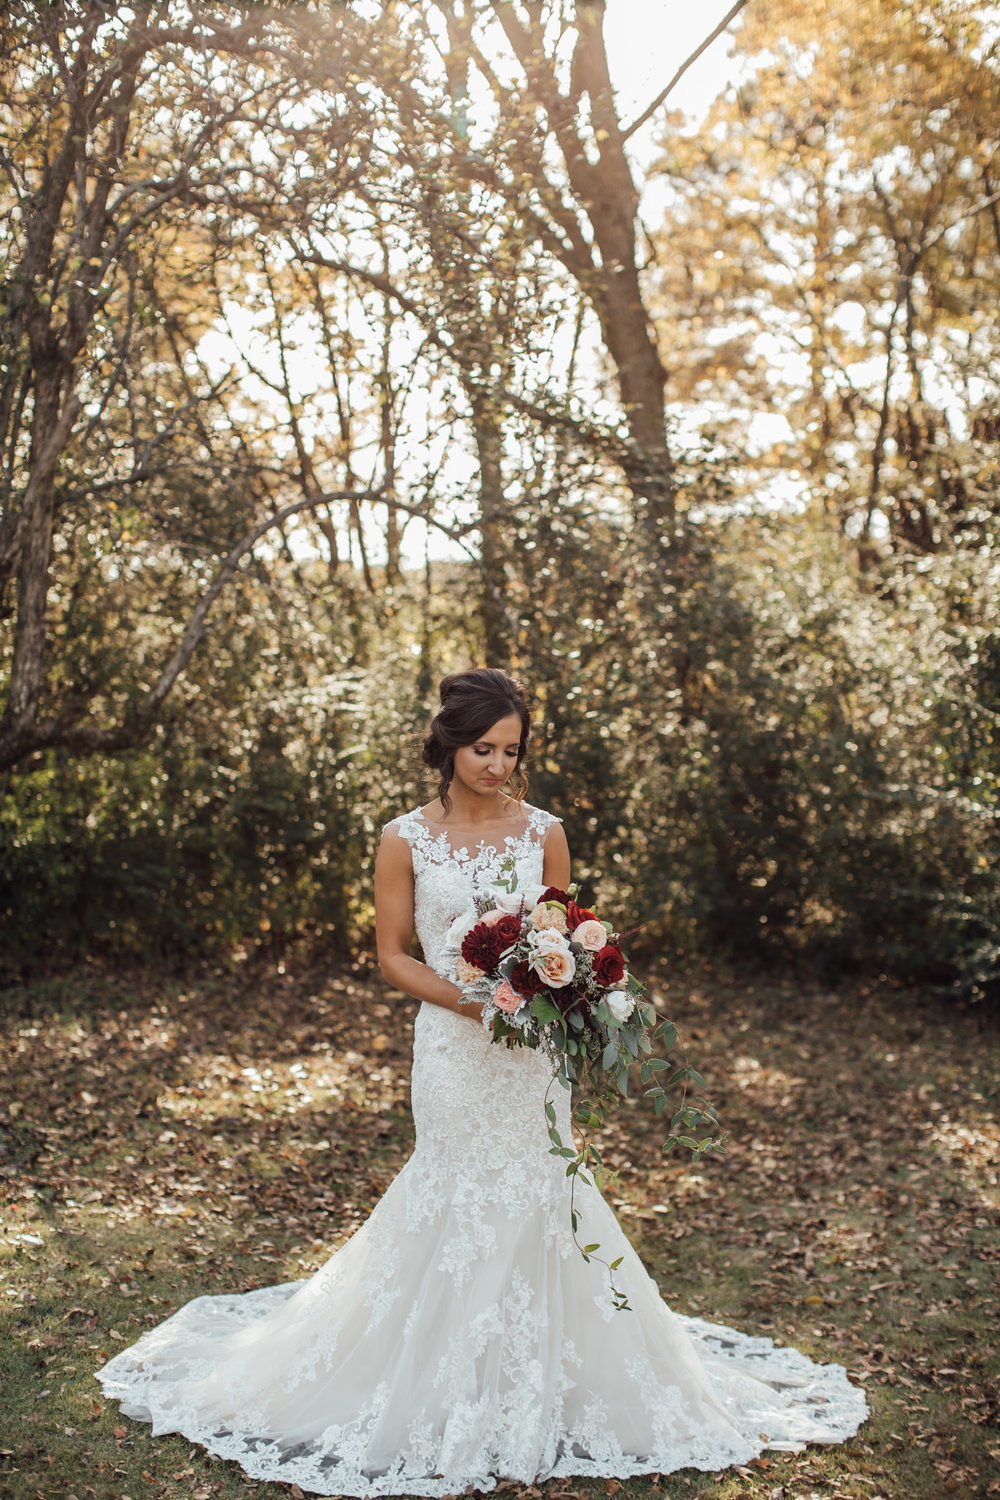 chattannooga-wedding-photographer-waterhouse-pavillion-cassie-cook-photography-6.jpg